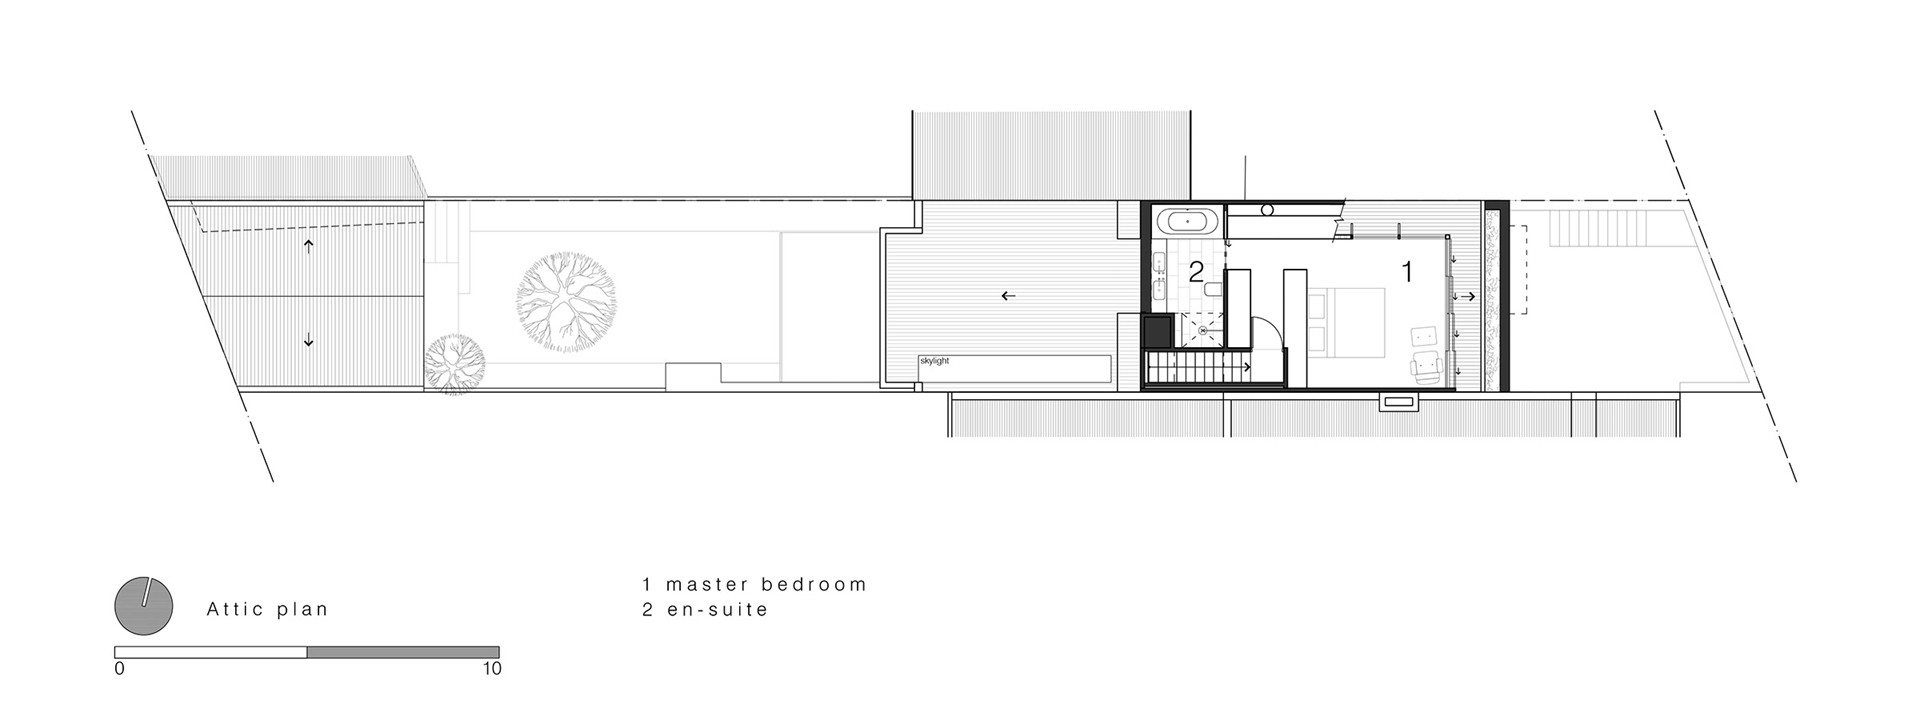 luigi rosselli architects   directors cut on architecture 1_Attic Plan_96DPI (Copy)